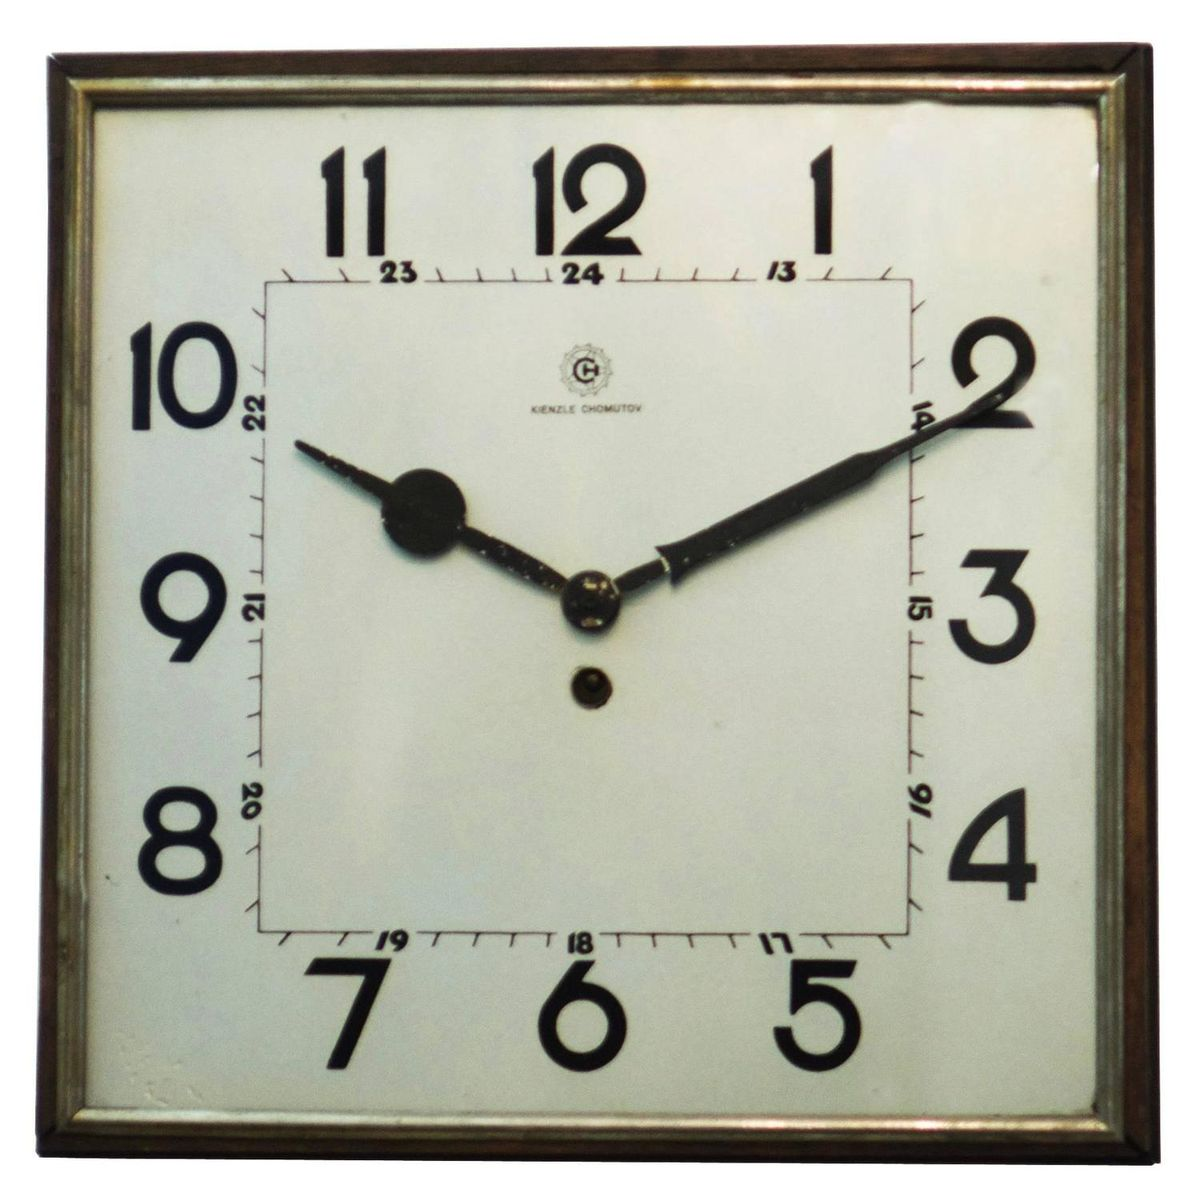 Big bauhaus wall clock from kienzle 1930s for sale at pamono for Kienzle wall clock parts